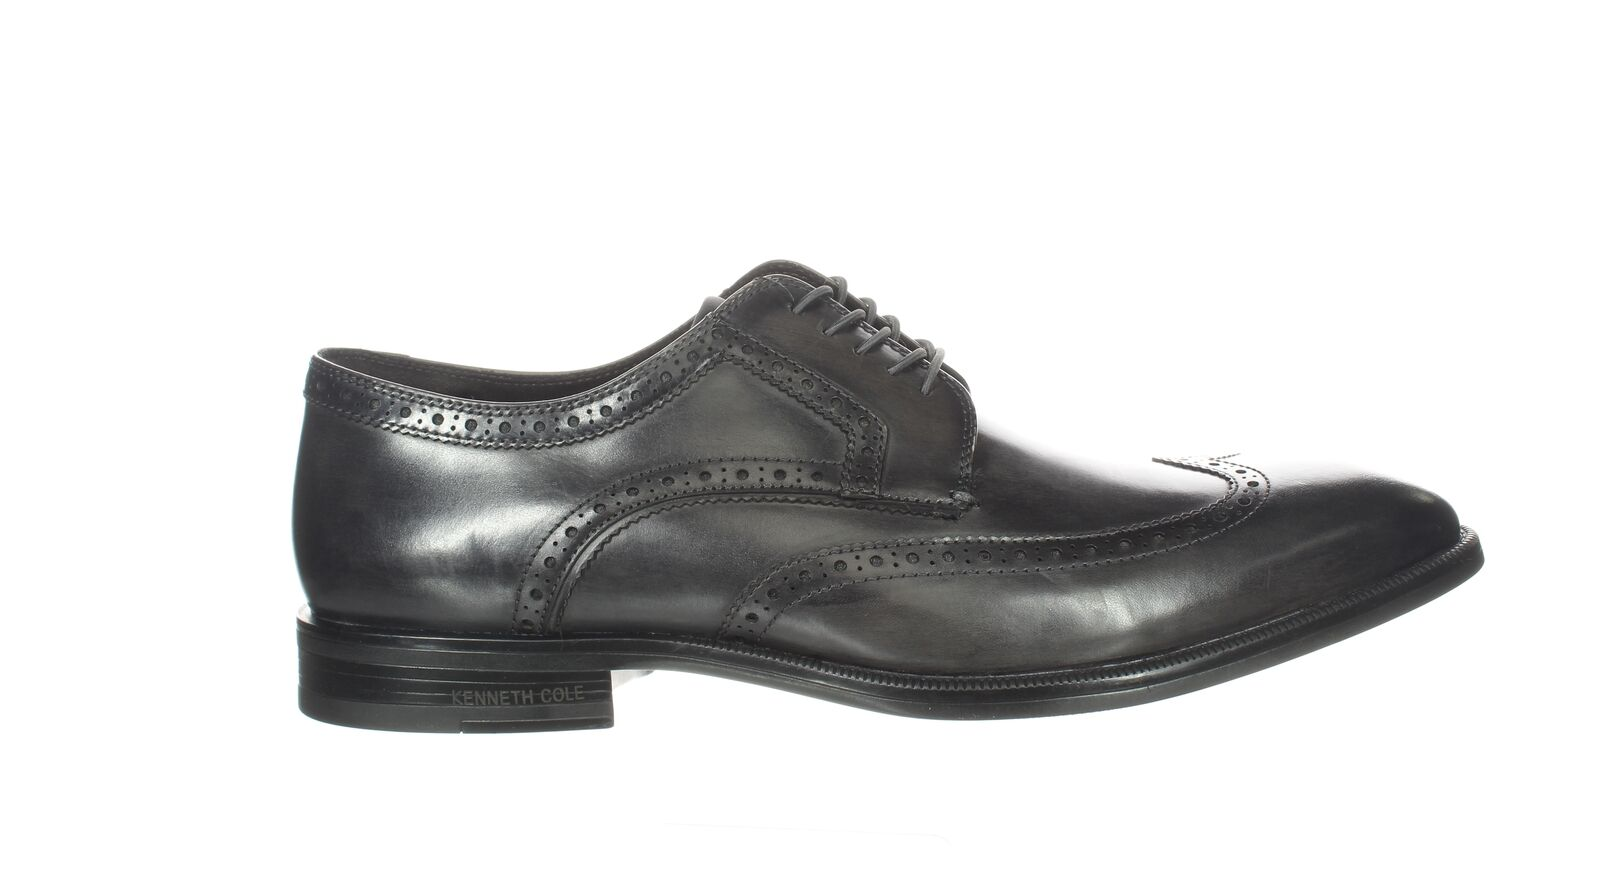 Kenneth Cole Mens Futurepod Lace Up Grey Wing Tips Size 12 (2126954)